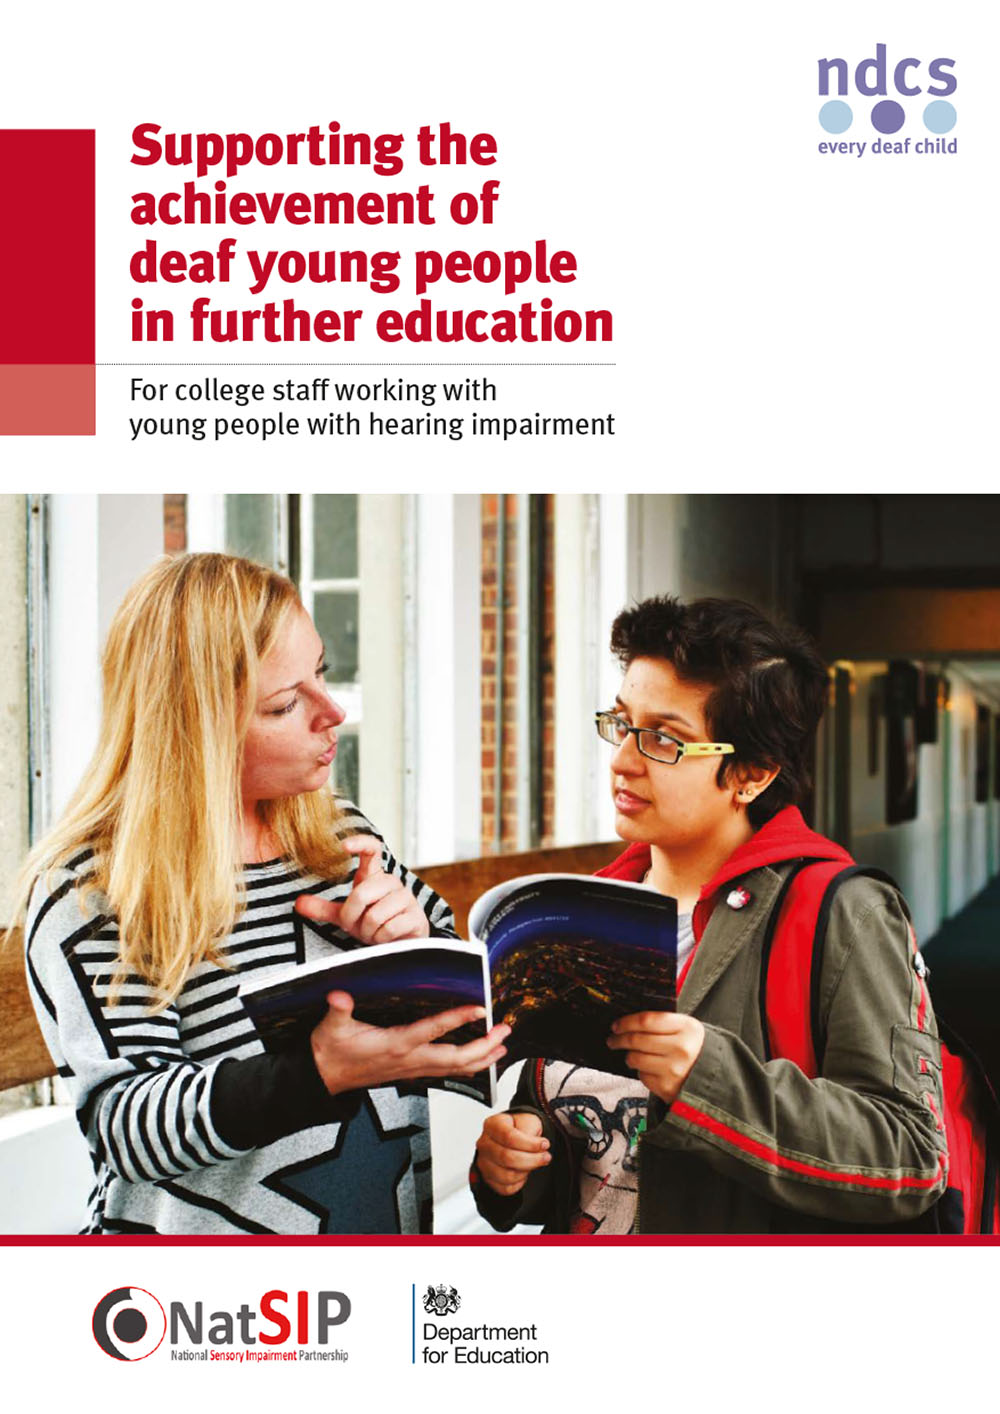 Supporting the achievement of deaf young people in further education